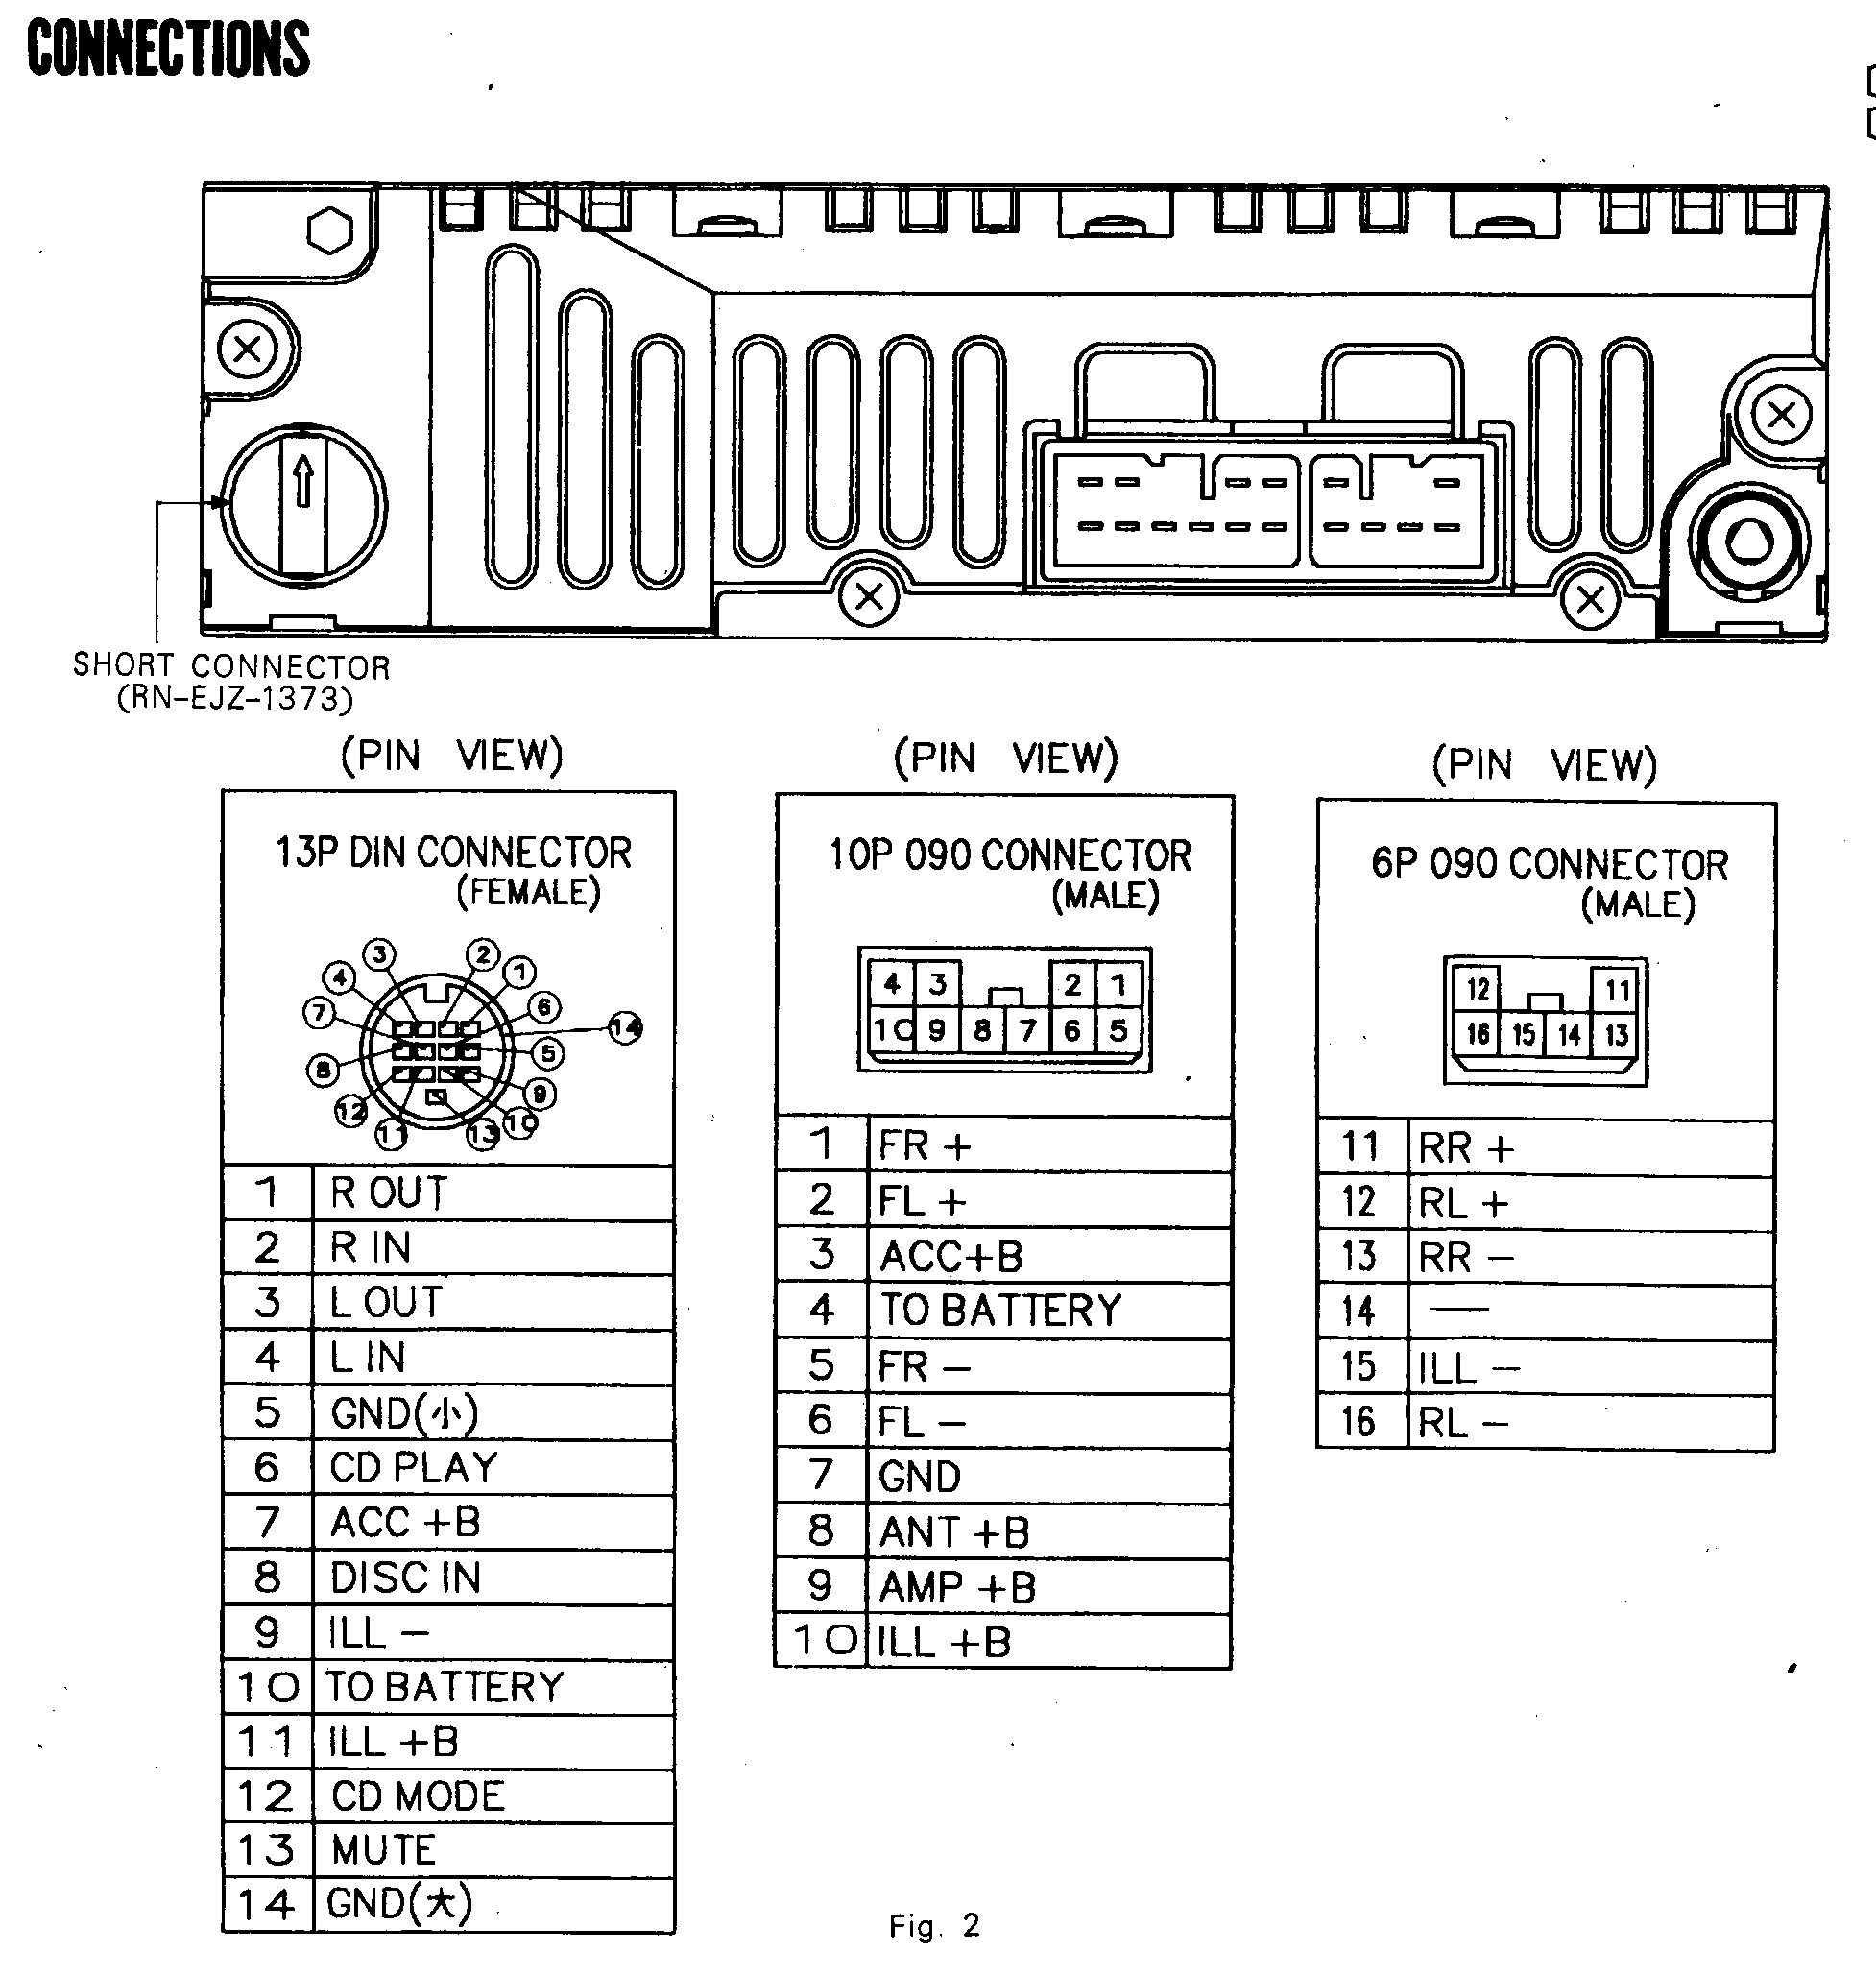 Car Stereo Installation Wiring Diagram Wiring Diagram for A Dual Car Stereo New Help toyota Coachedby Of Car Stereo Installation Wiring Diagram